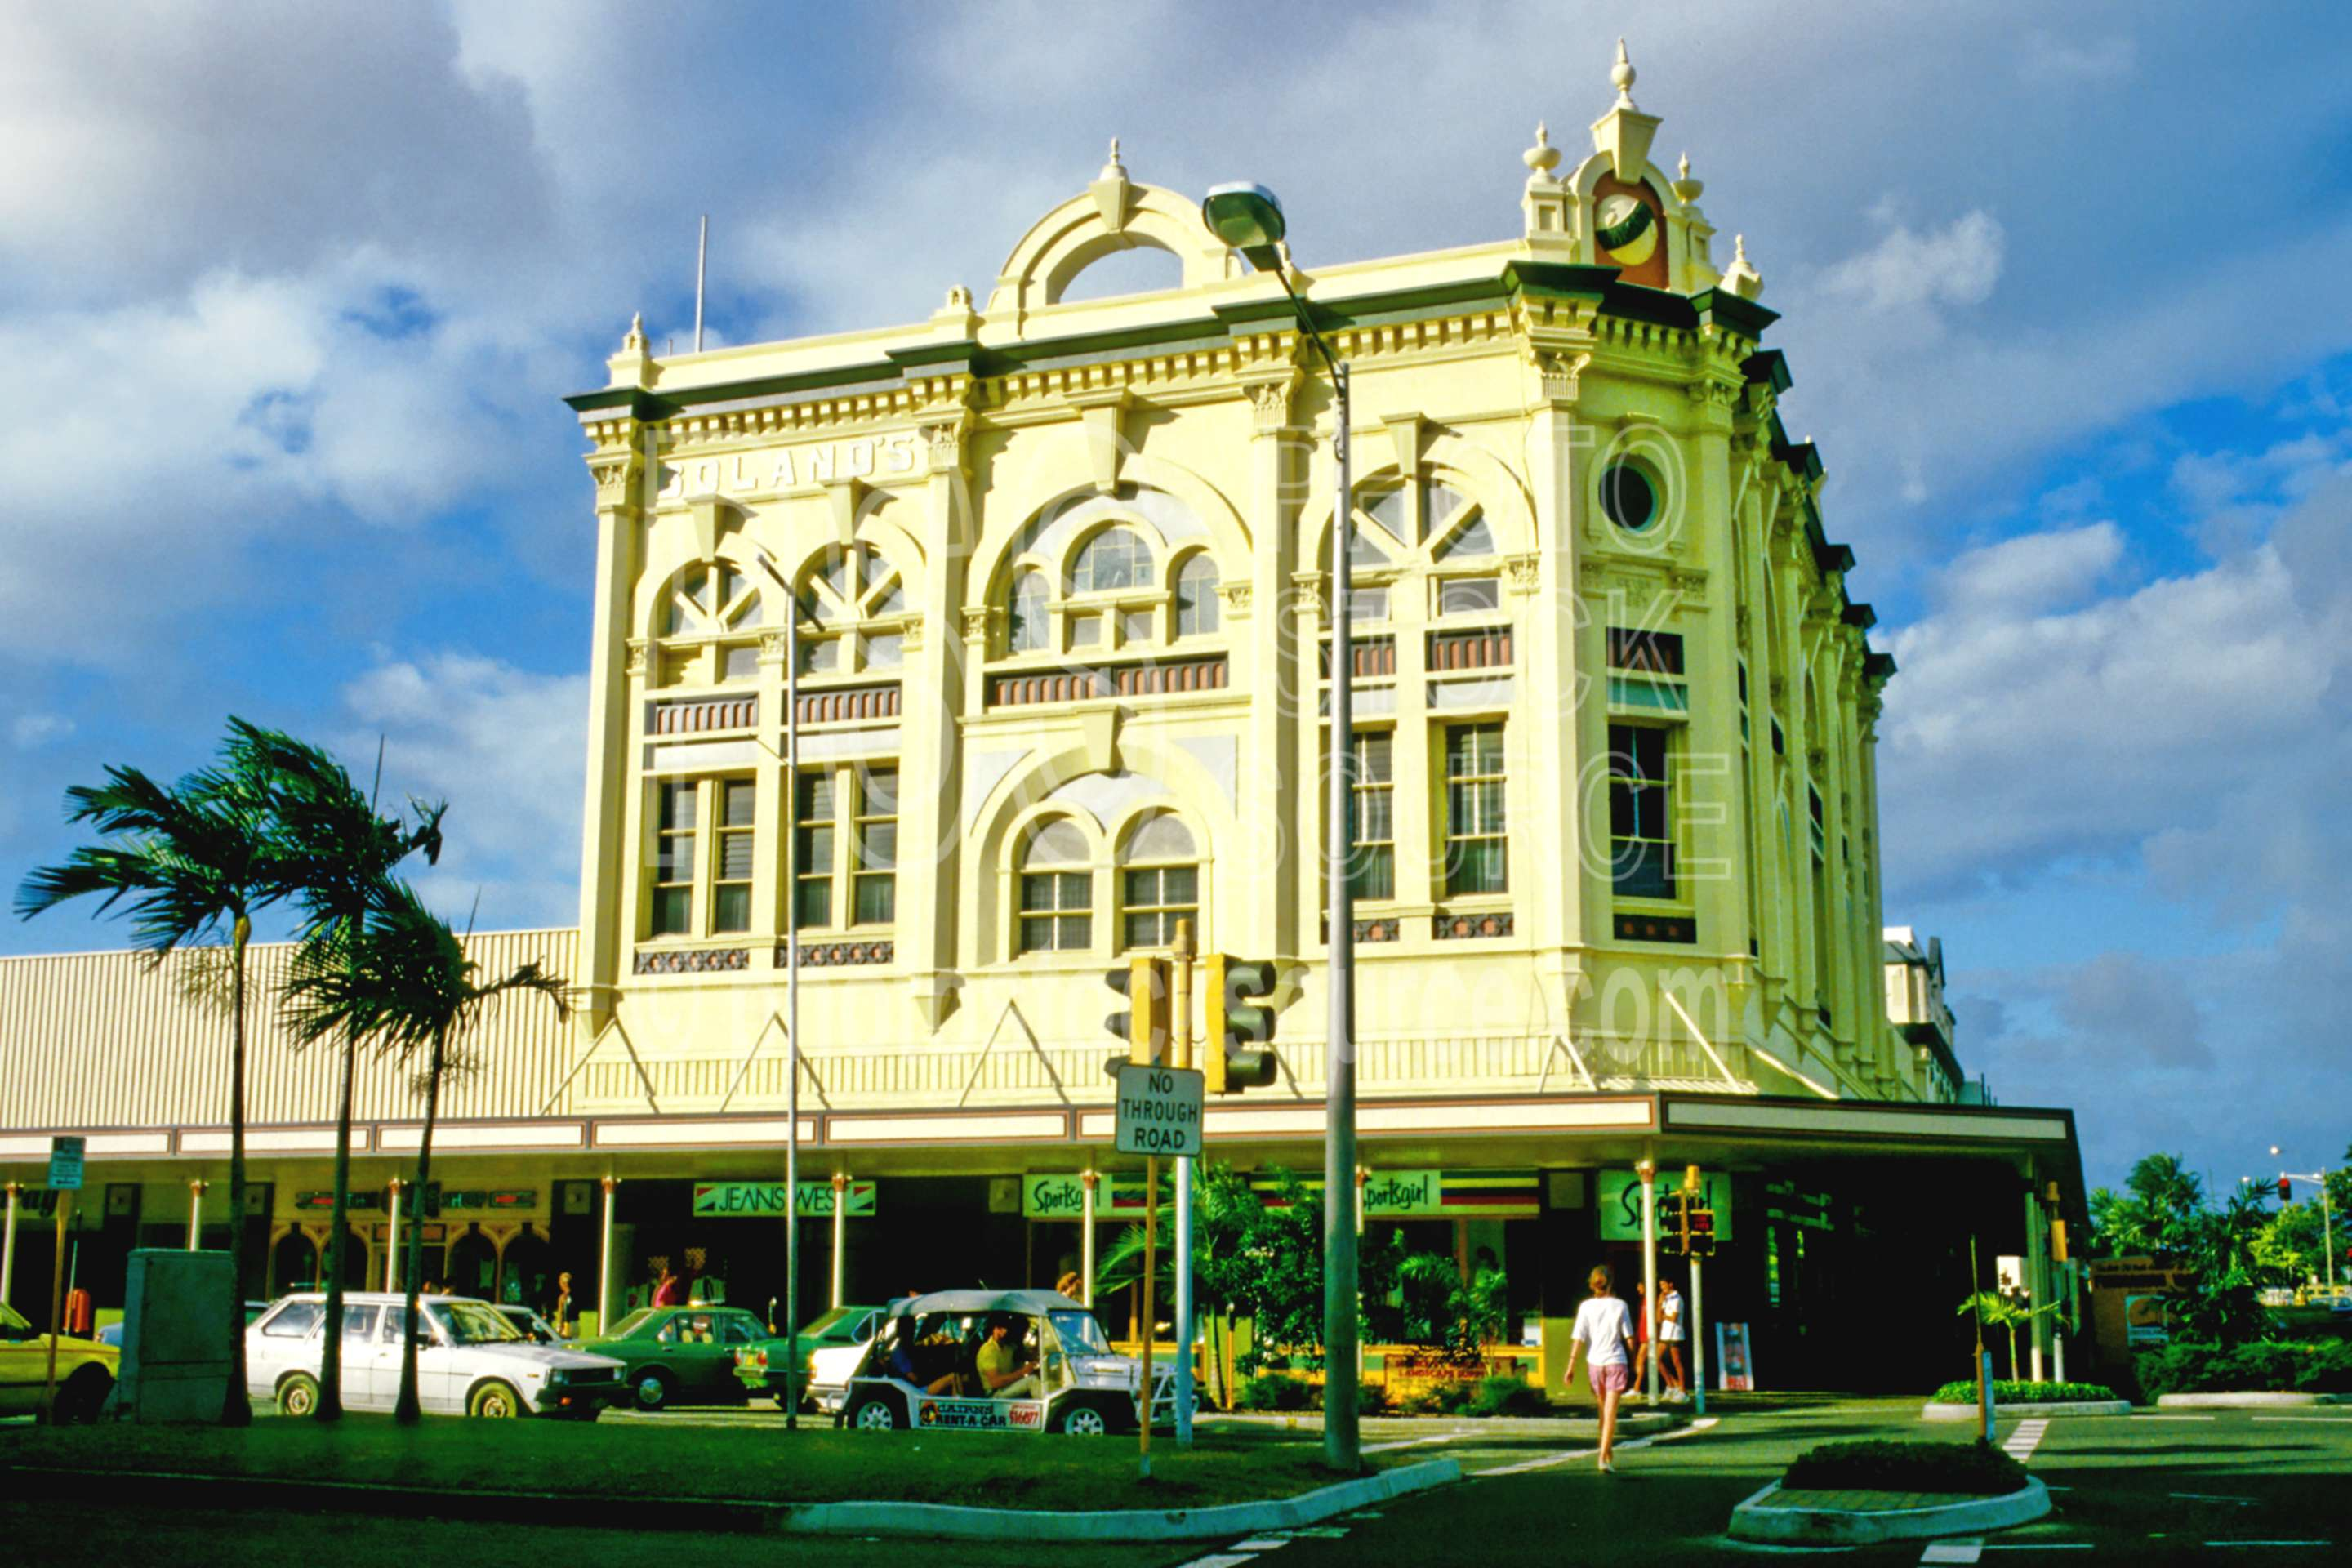 The Boland's Building,hotel